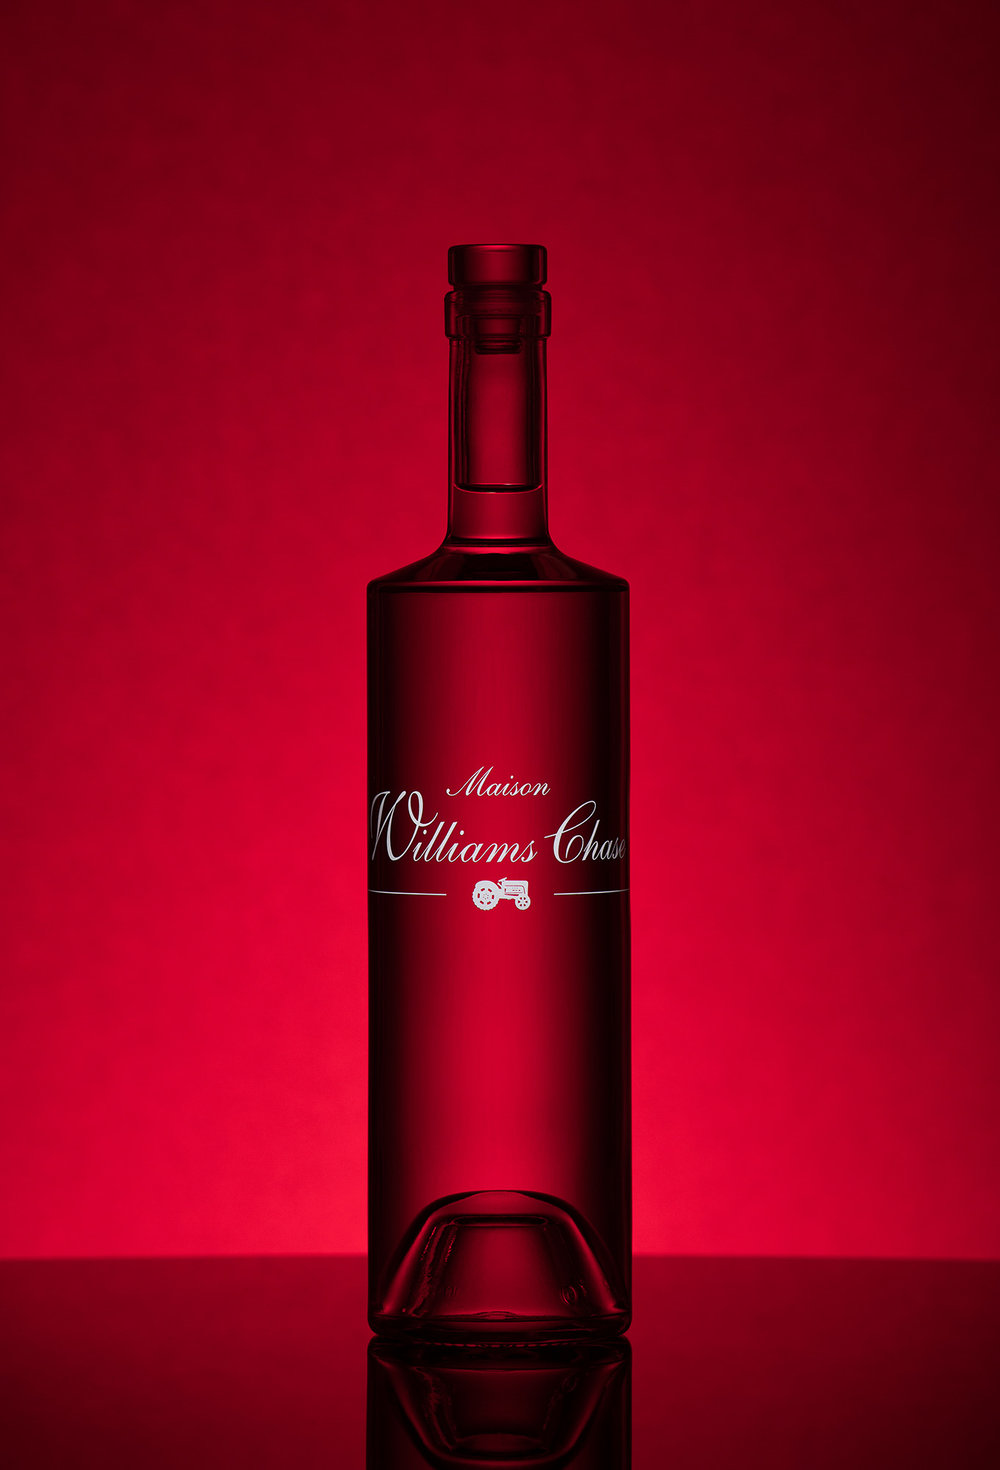 Maison Williams Chase Wine Bottle